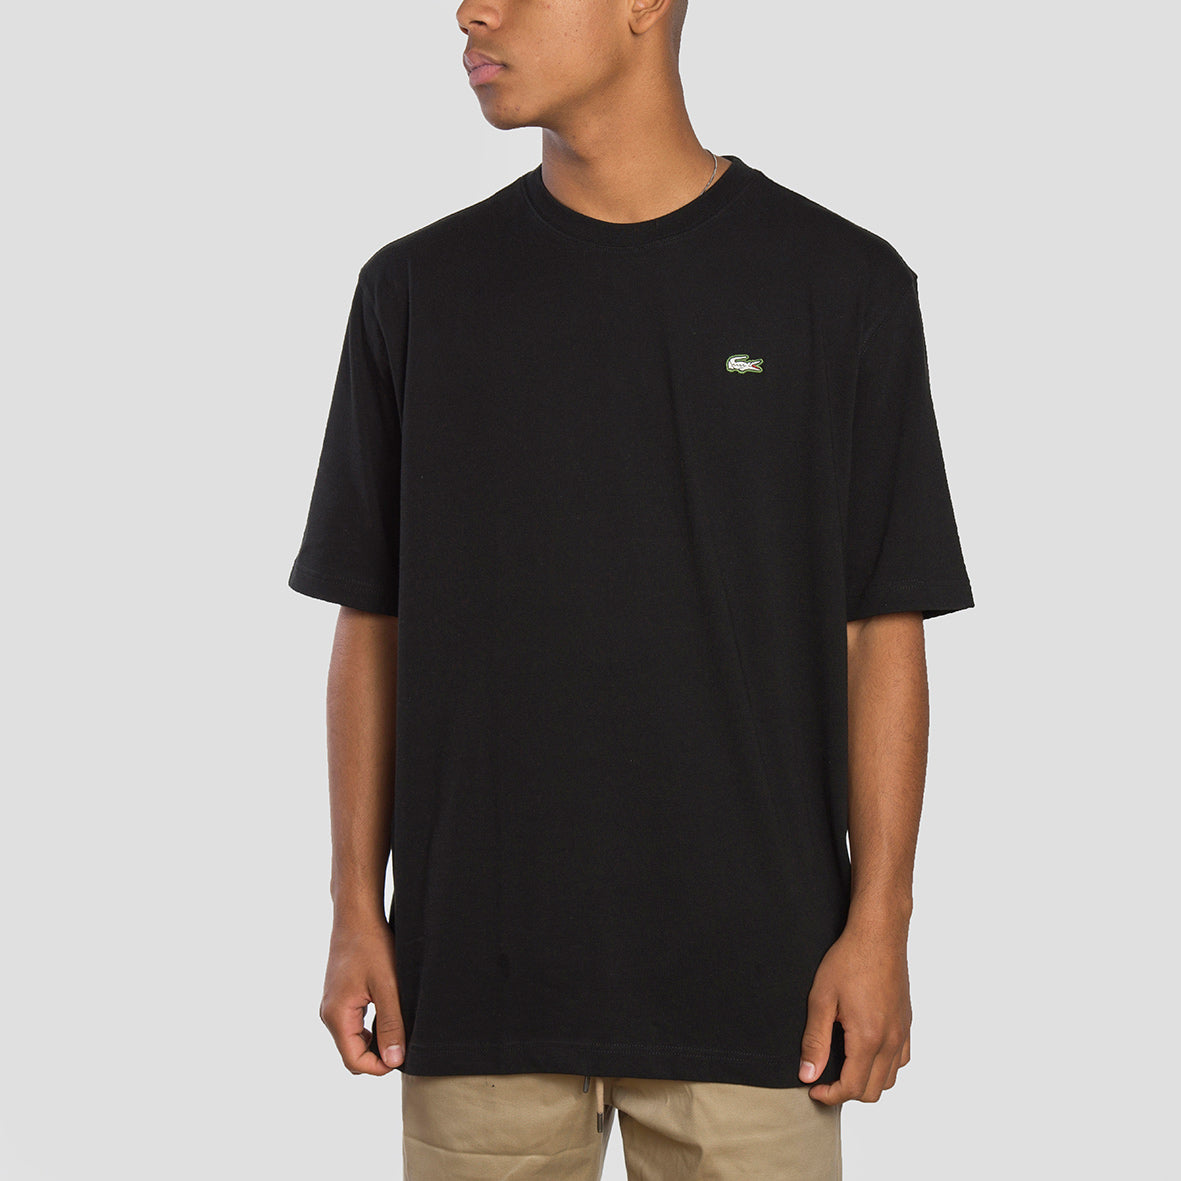 Lacoste Live Camiseta Loose Fit - TH8084-00 - Colección Chico